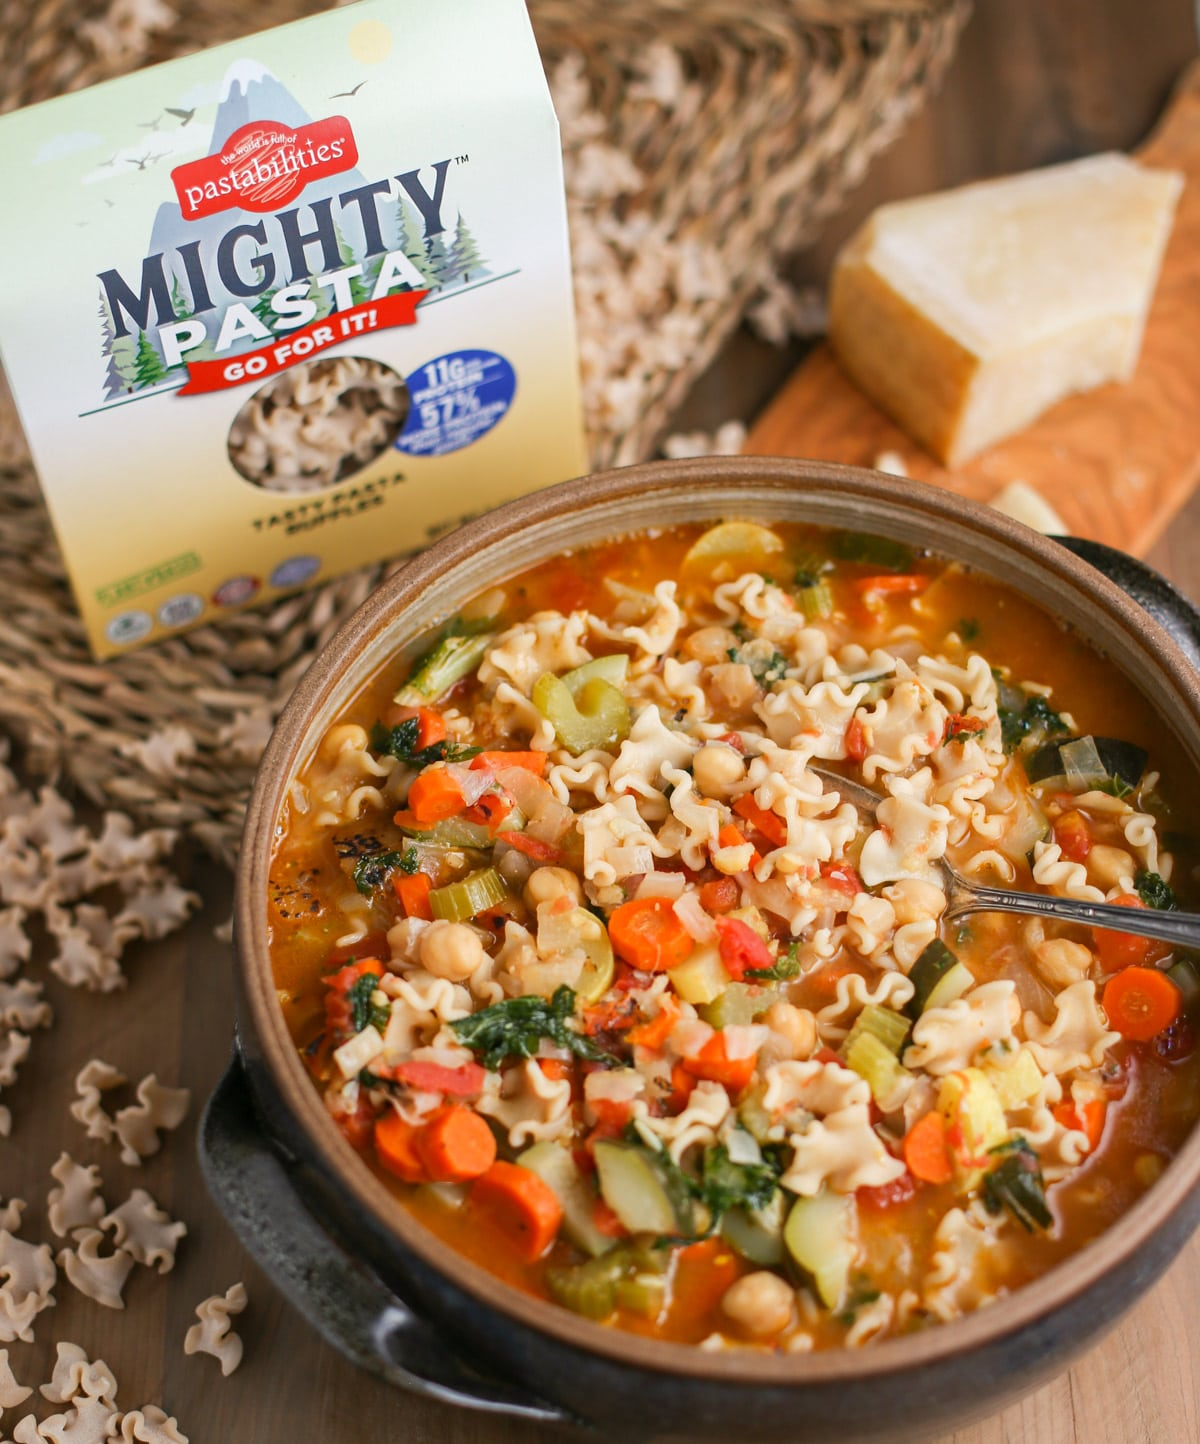 Mighty Minestrone Soup bowl with box of Mighty Pasta